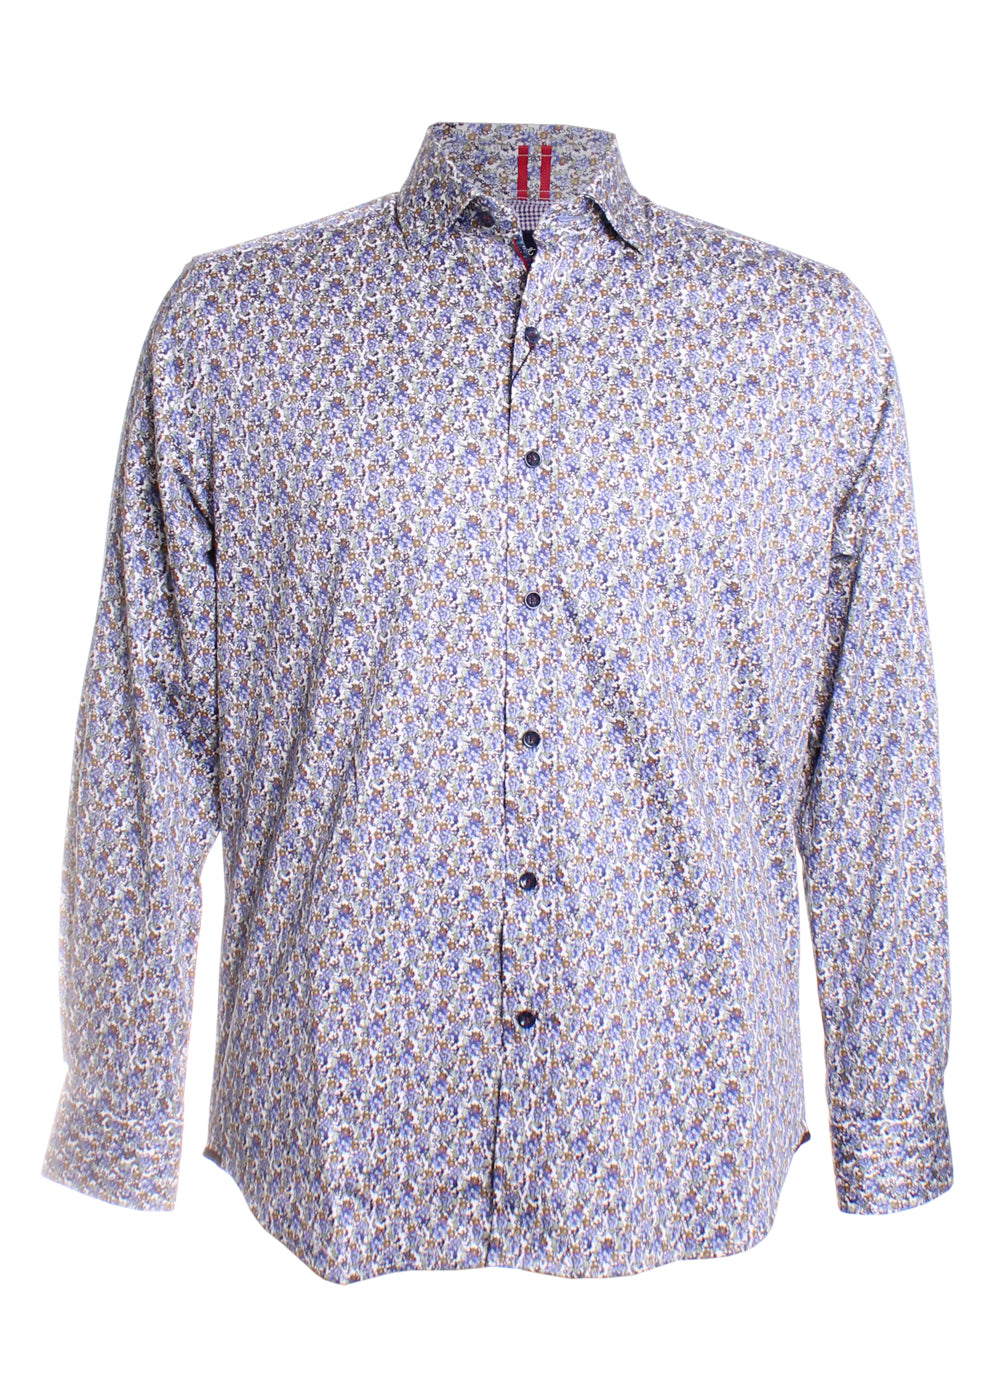 Robert Graham Richardson Sport Shirt in Multi